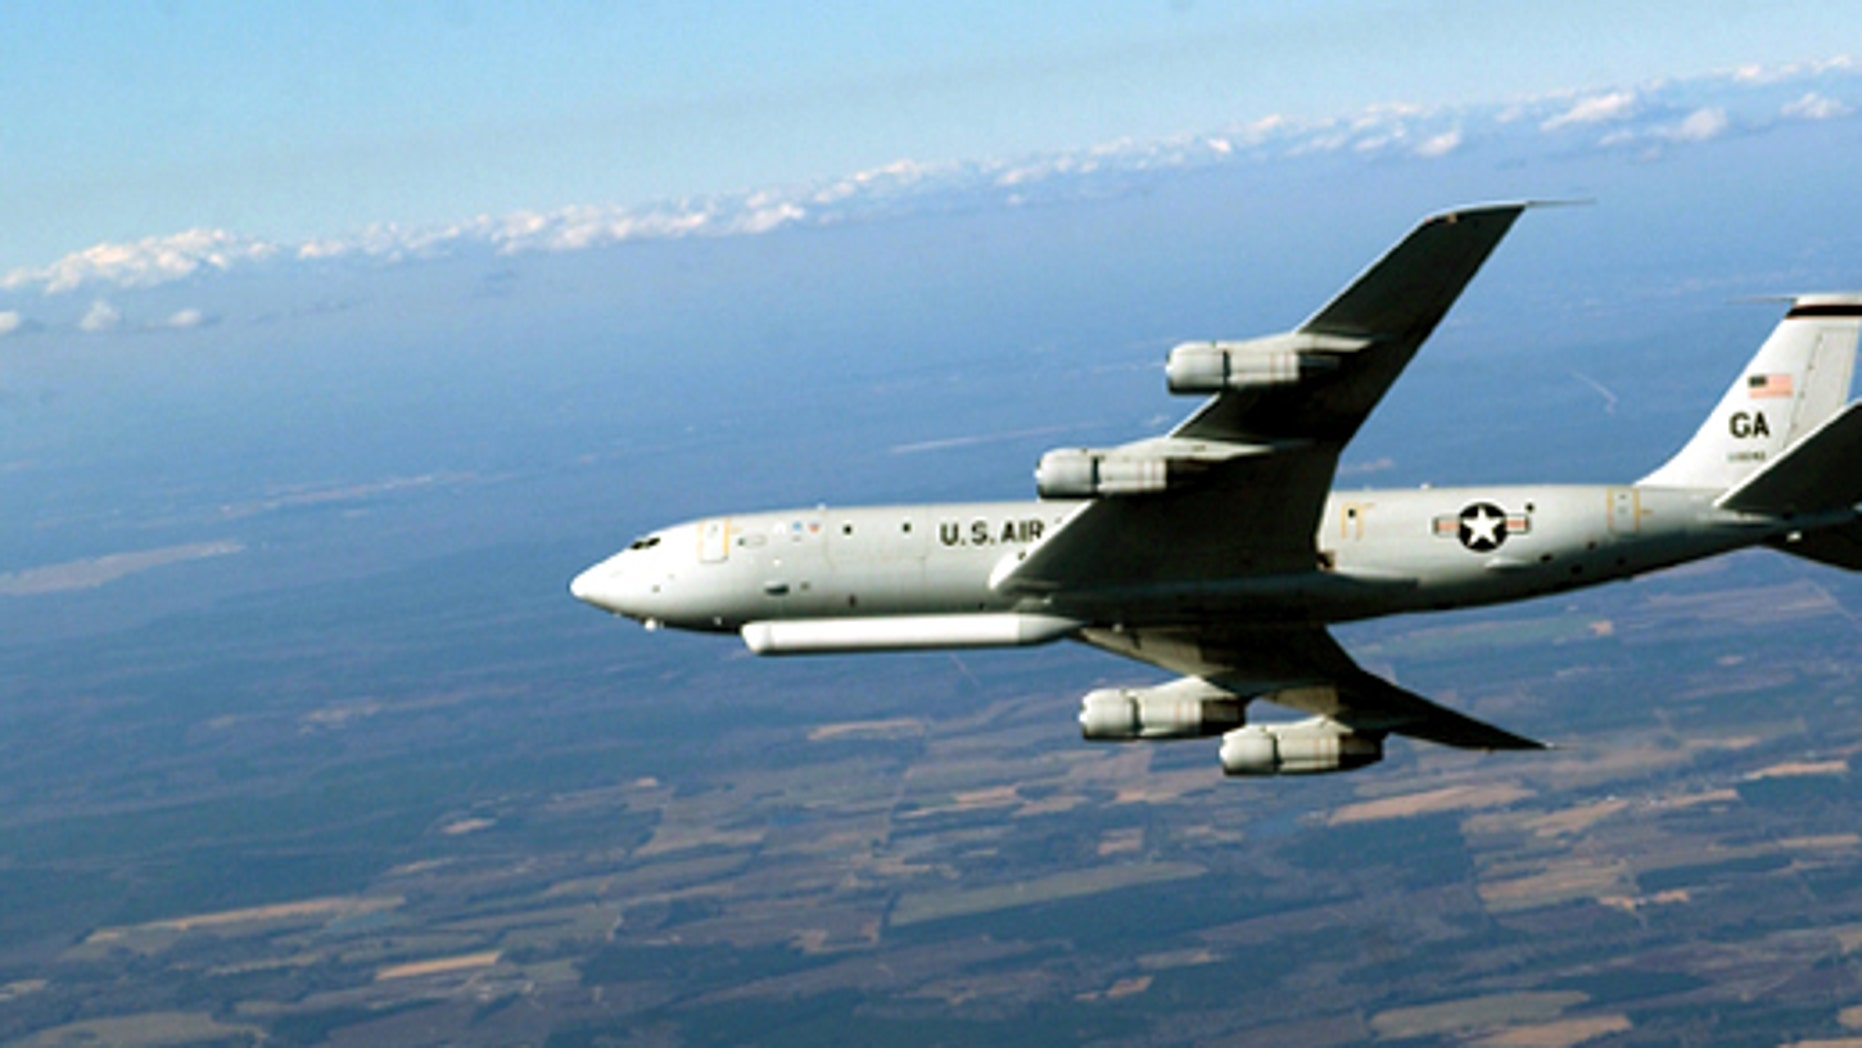 The E-8C Joint Surveillance Target Attack Radar System is a joint Air Force - Army program. The Joint STARS uses a multi-mode side looking radar to detect, track, and classify moving ground vehicles in all conditions deep behind enemy lines. (U.S. Air Force photo by Staff Sgt. Shane Cuomo)